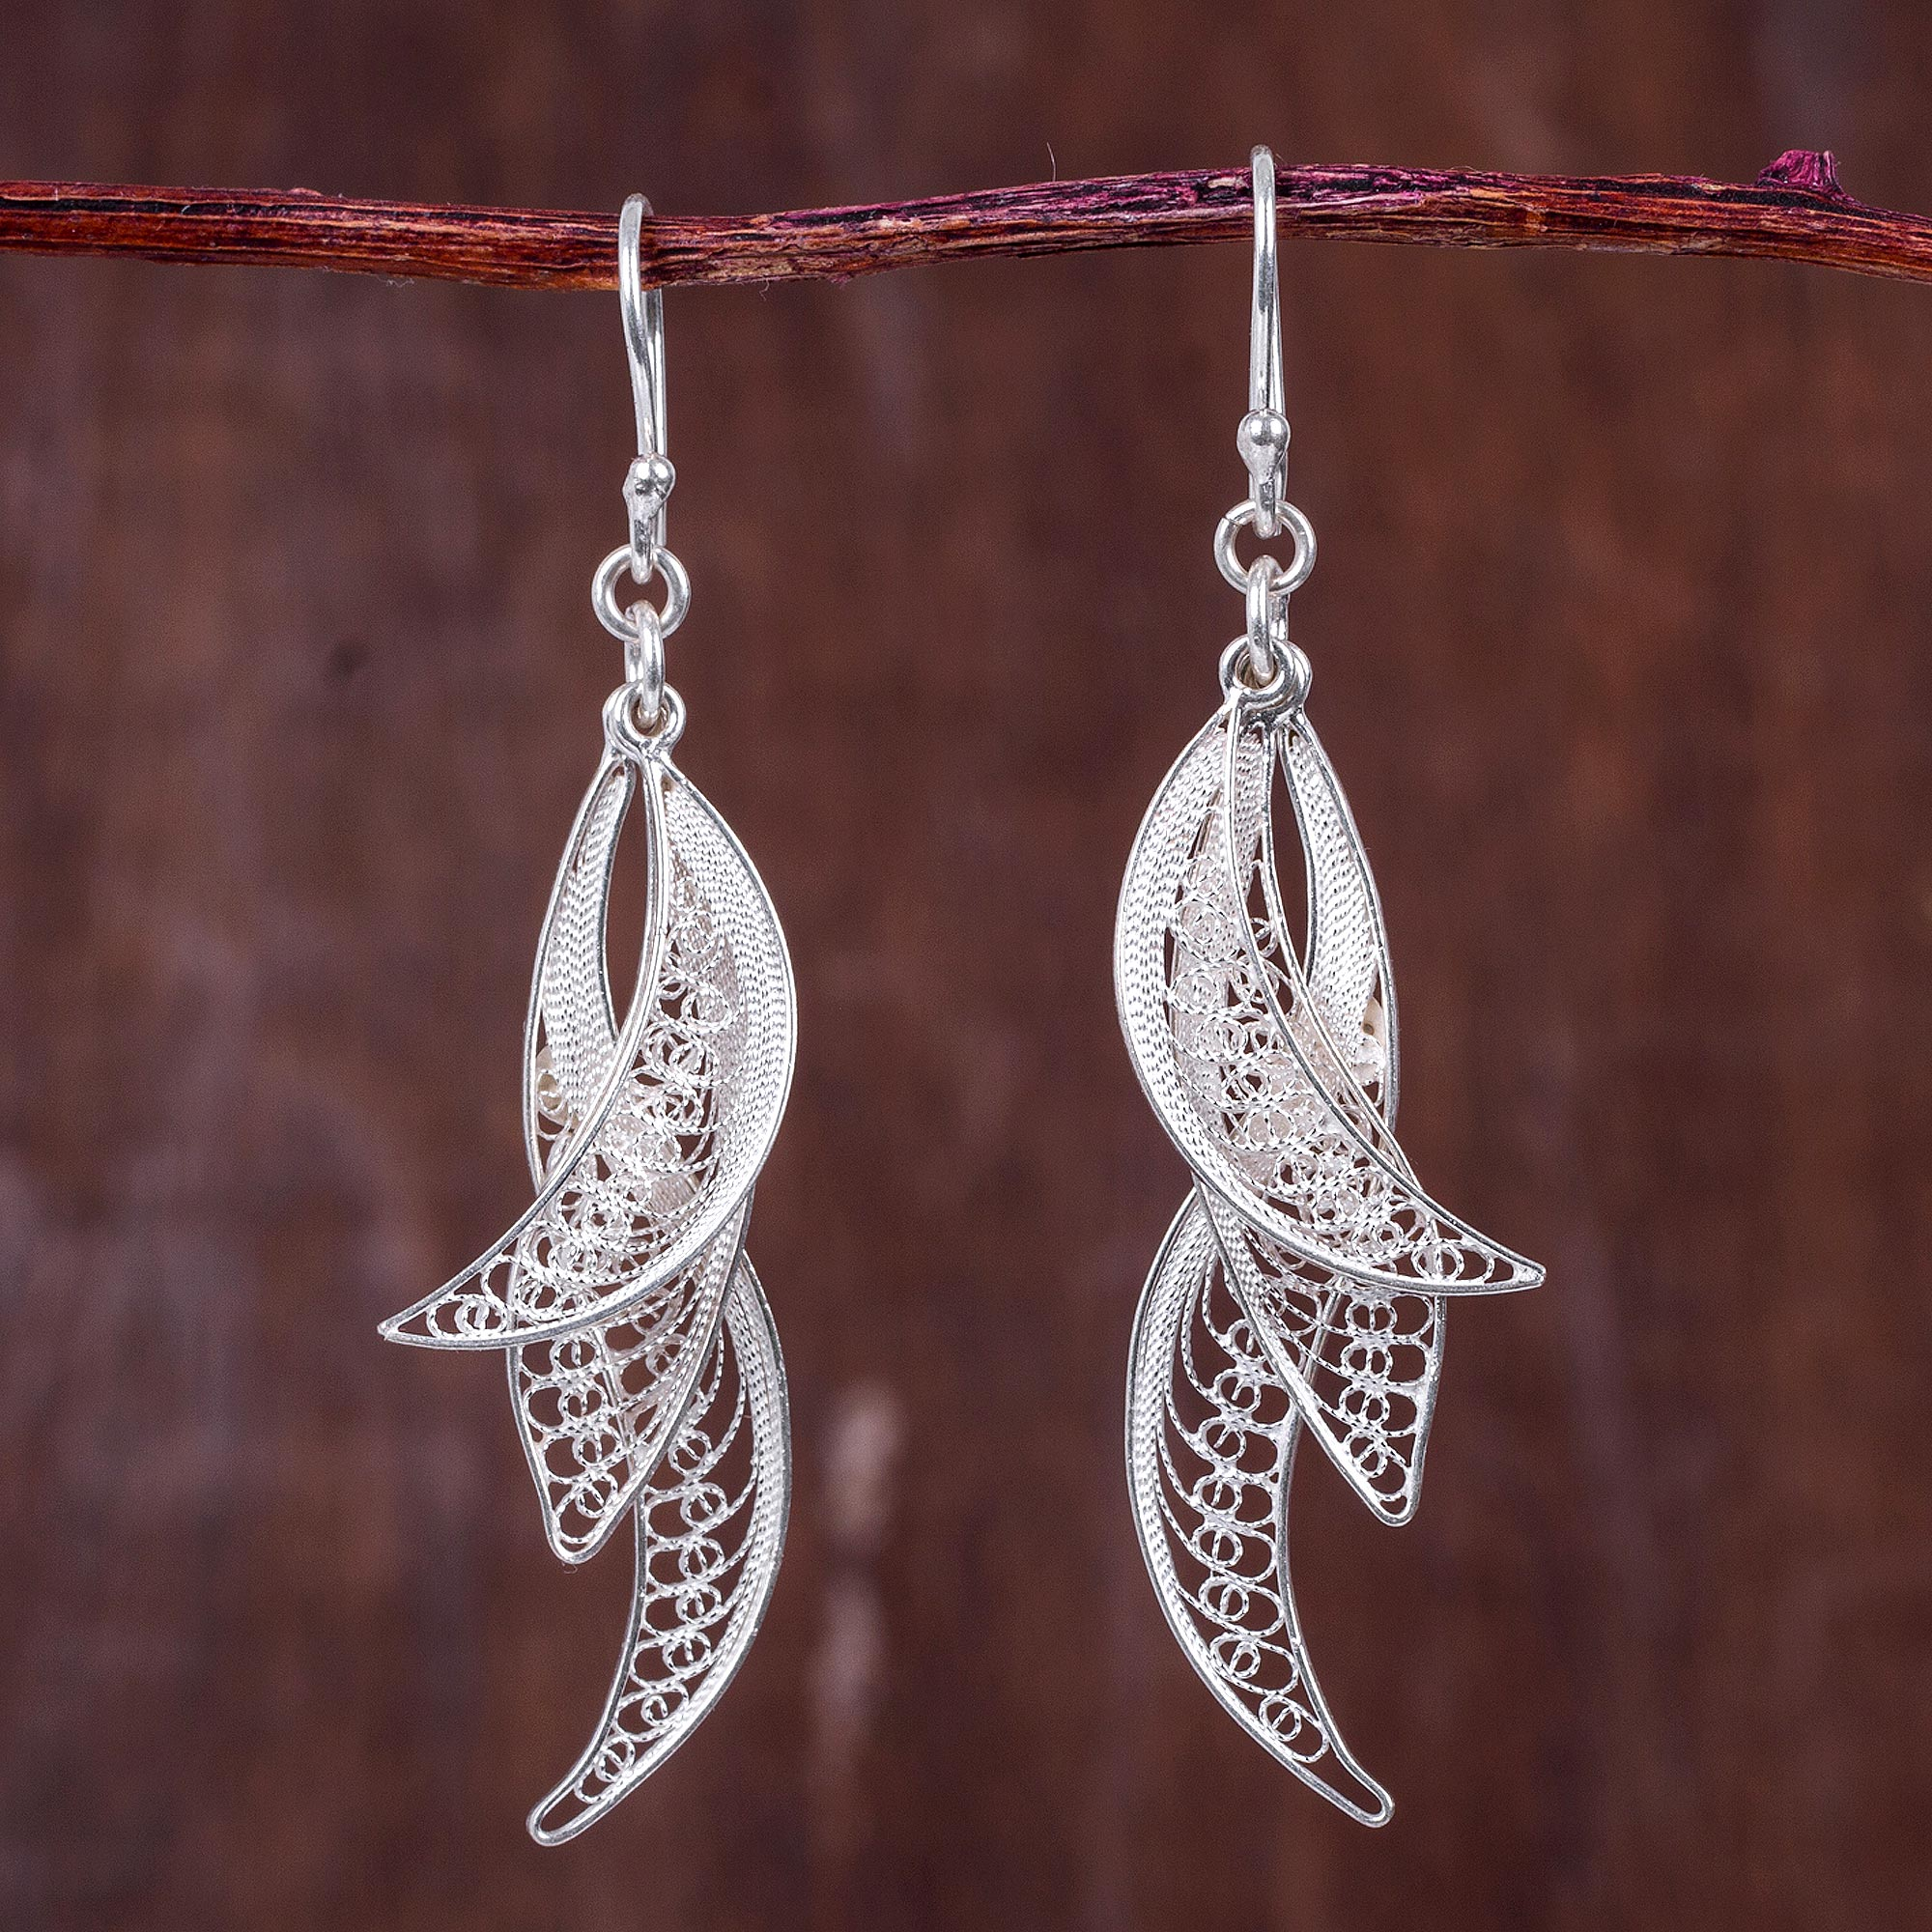 filigree earrings filigree leaves in hand crafted sterling silver earrings - windswept |  novica ckgbzph